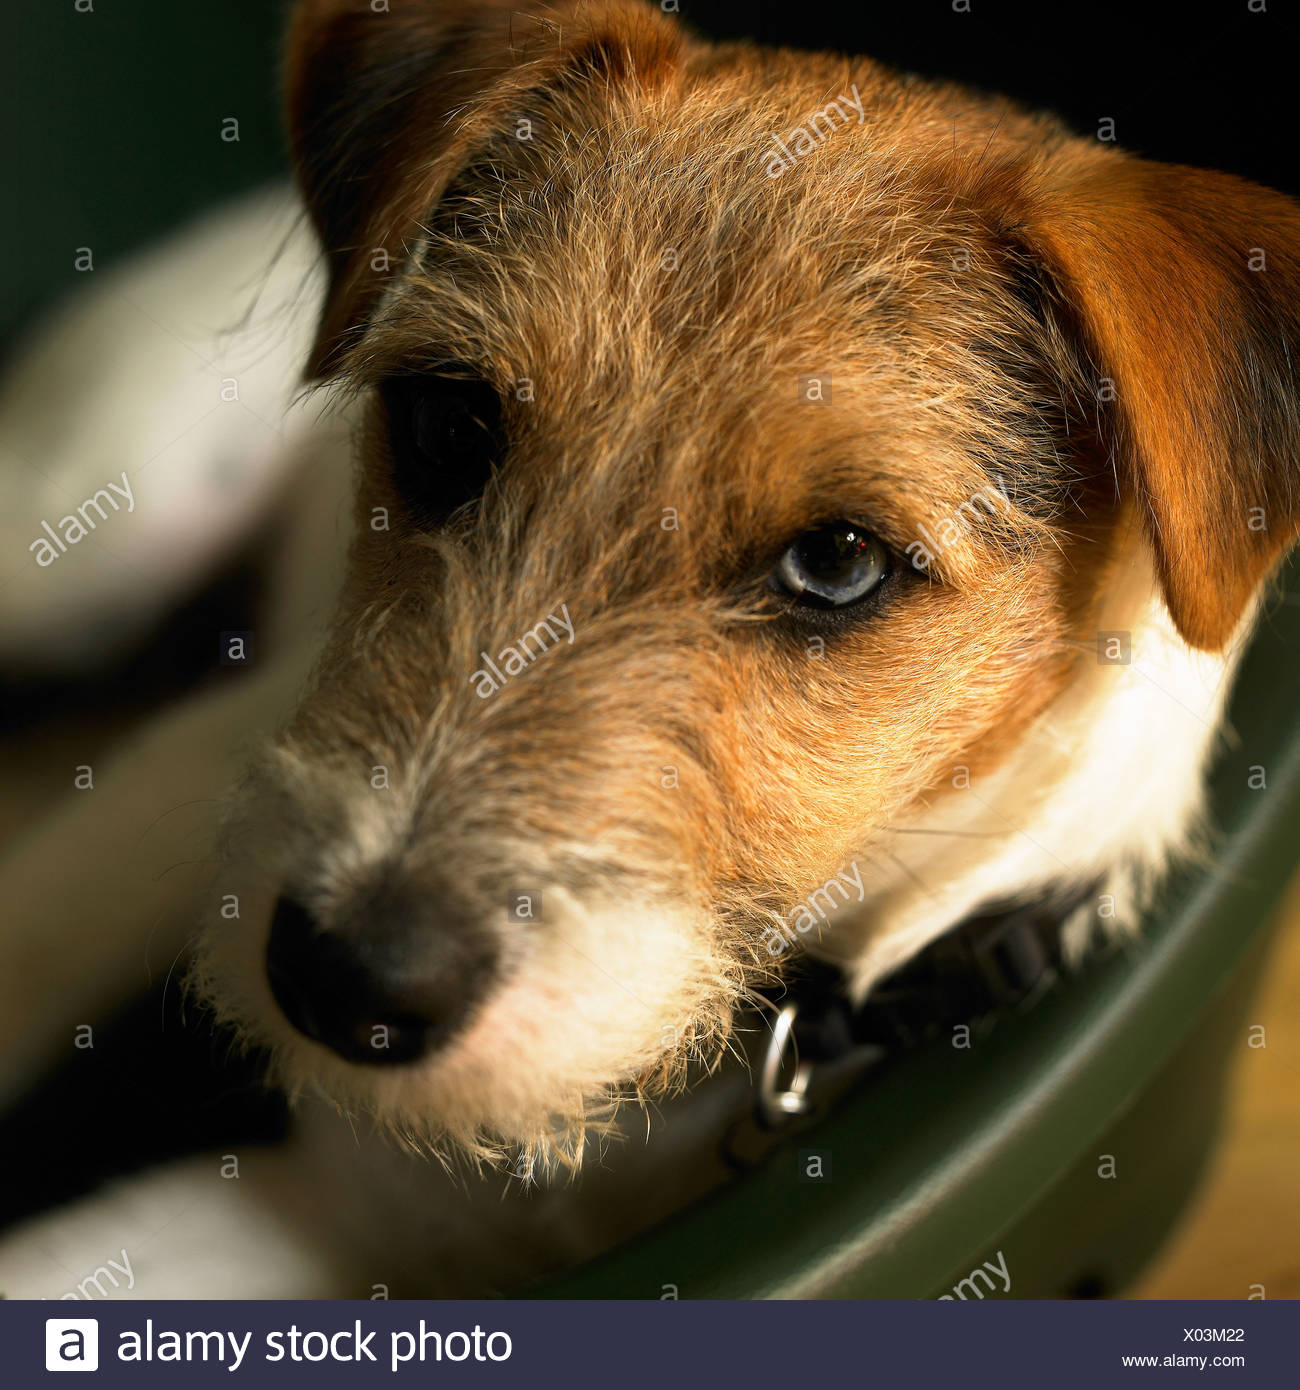 A Parson Russell terrier dog looking to camera - Stock Image